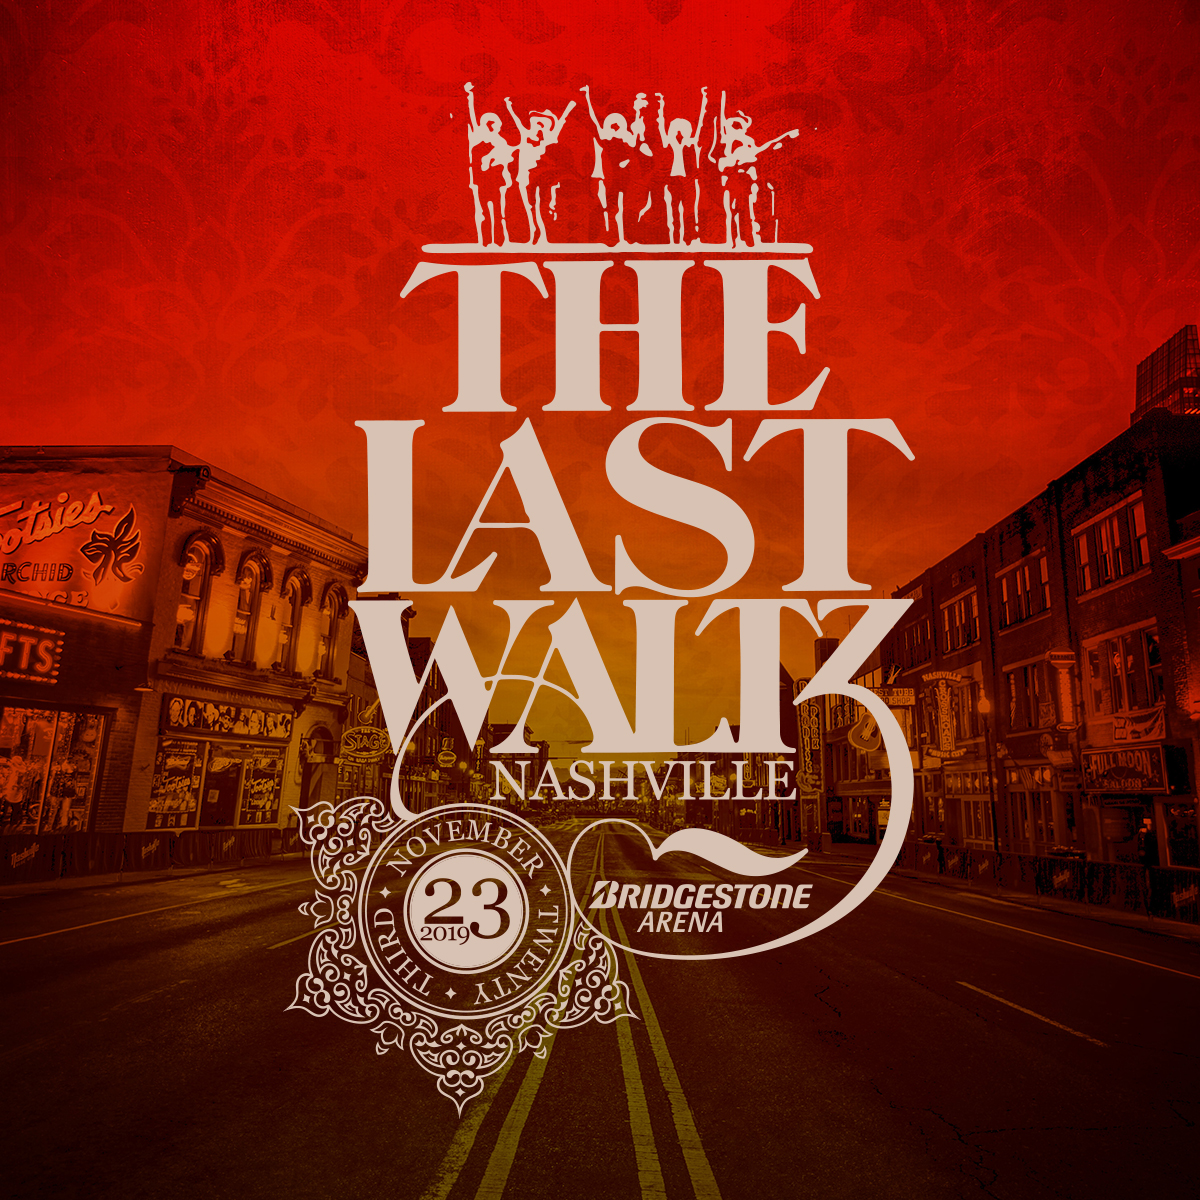 Darius To Join The Last Waltz Nashville: An All-Star Celebration of the Band's Historic Farewell Concert